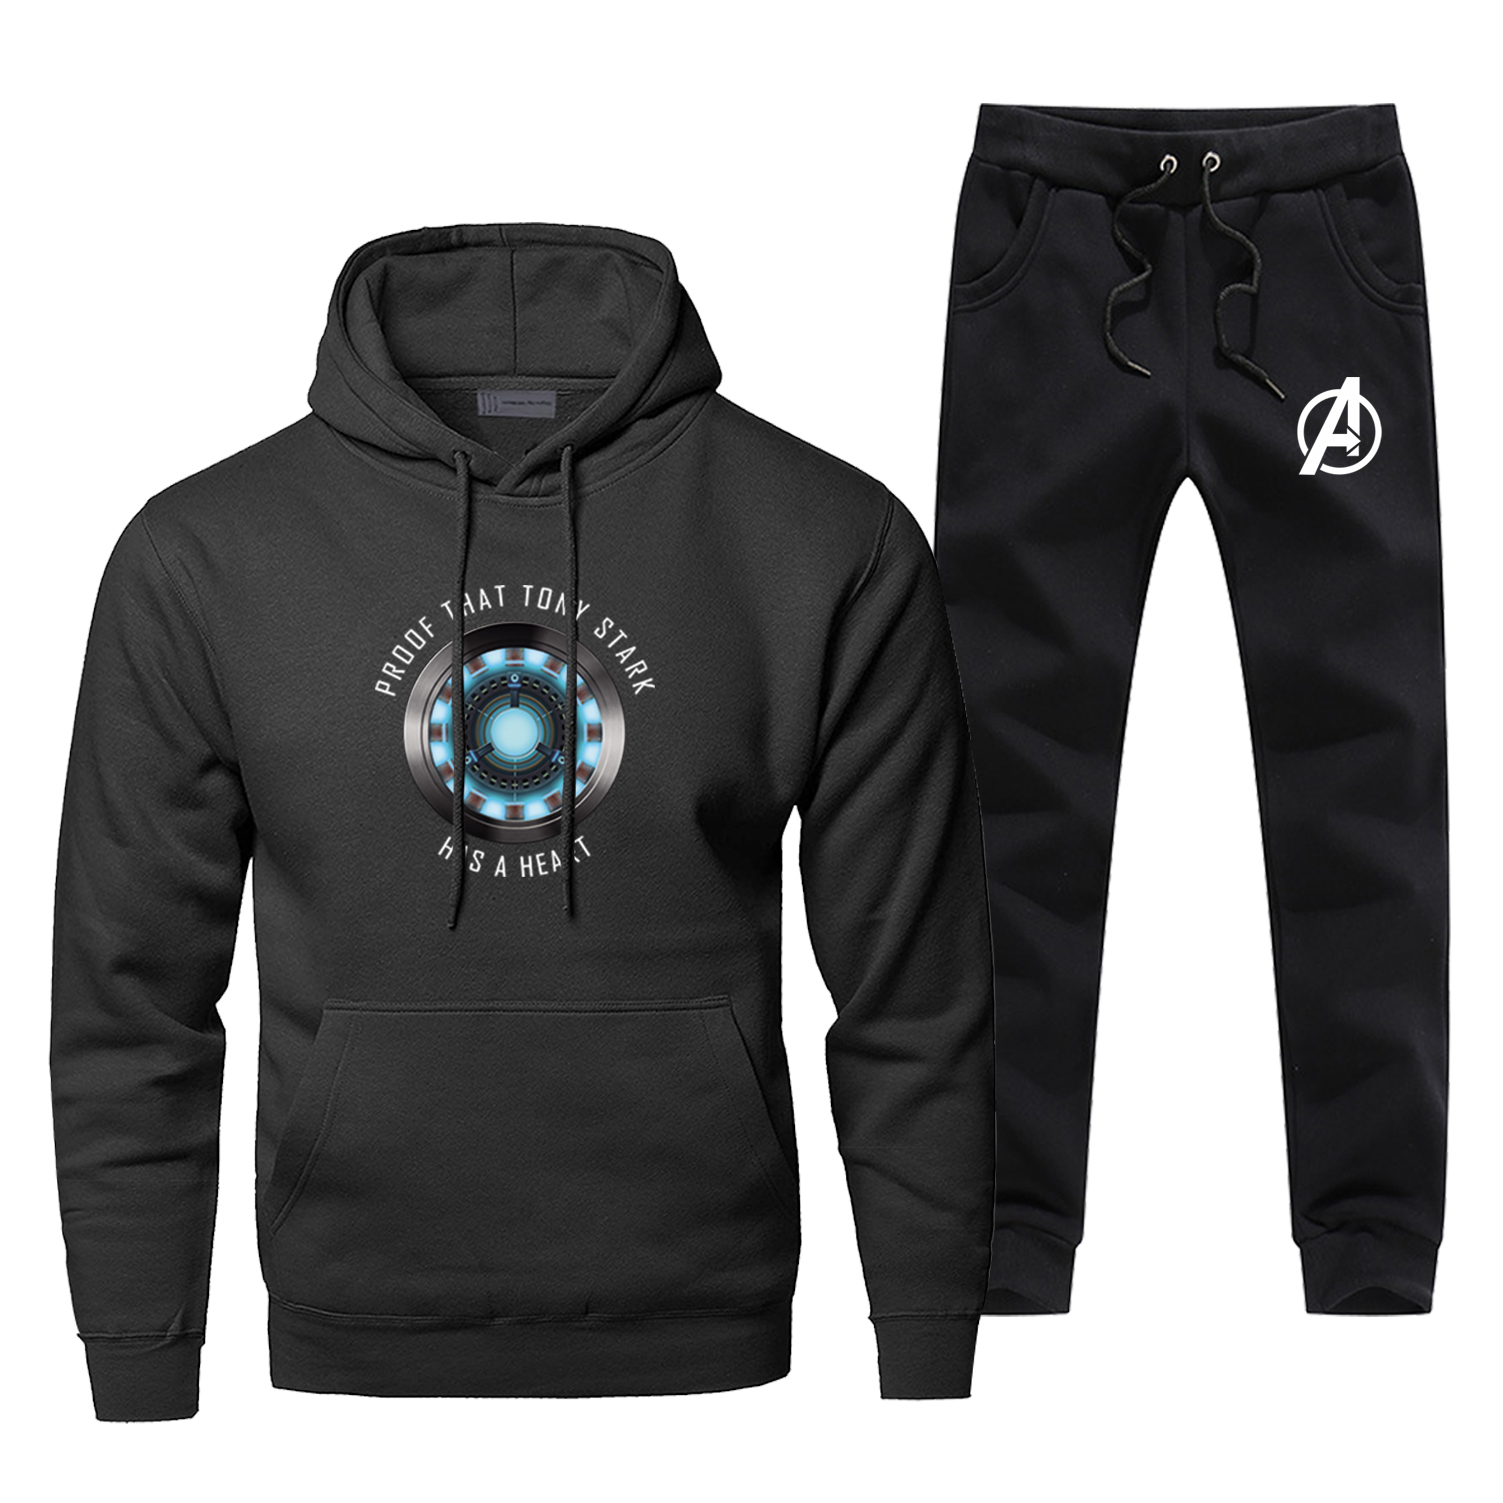 I Love You 3000 The Avengers  Hoodies Pants Men Sets Iron Man Tony Stark Suit Pant Sweatshirt Sportswear Autumn 2 PCS Tracksuit